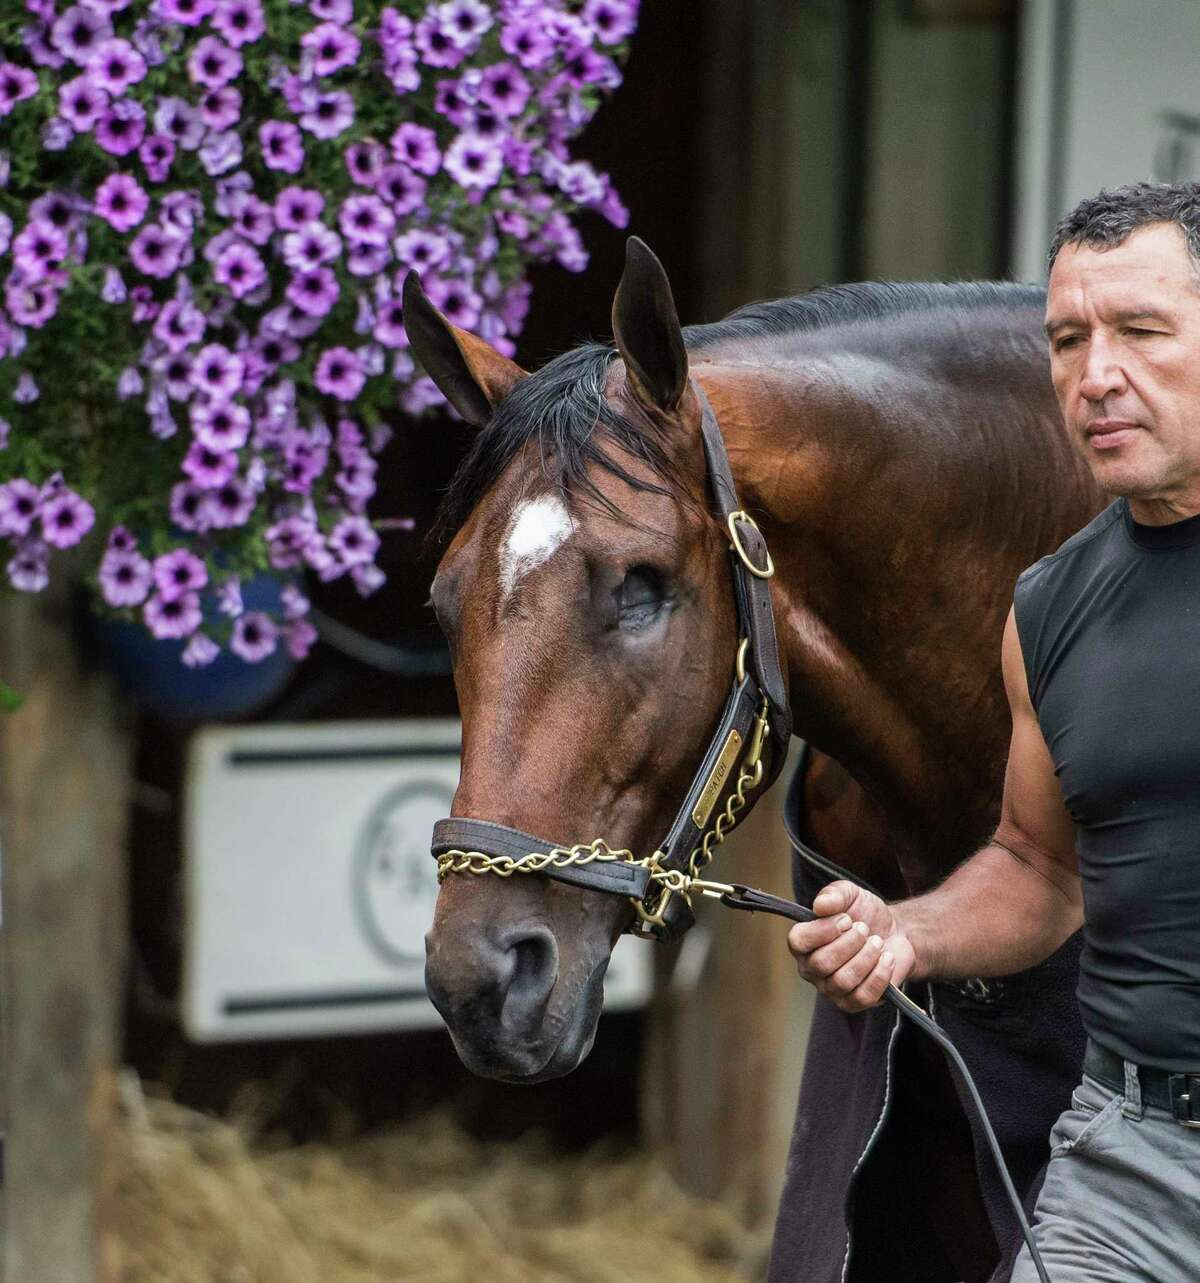 Fan favorite Patch will run in Saturday's Woodward Stakes cools out after morning exercise in the barn area of trainer Todd Pletcher on the Oklahoma Training Center after his morning exercise Friday Aug. 31, 2018 in Saratoga Springs, N.Y. (Skip Dickstein/Times Union)